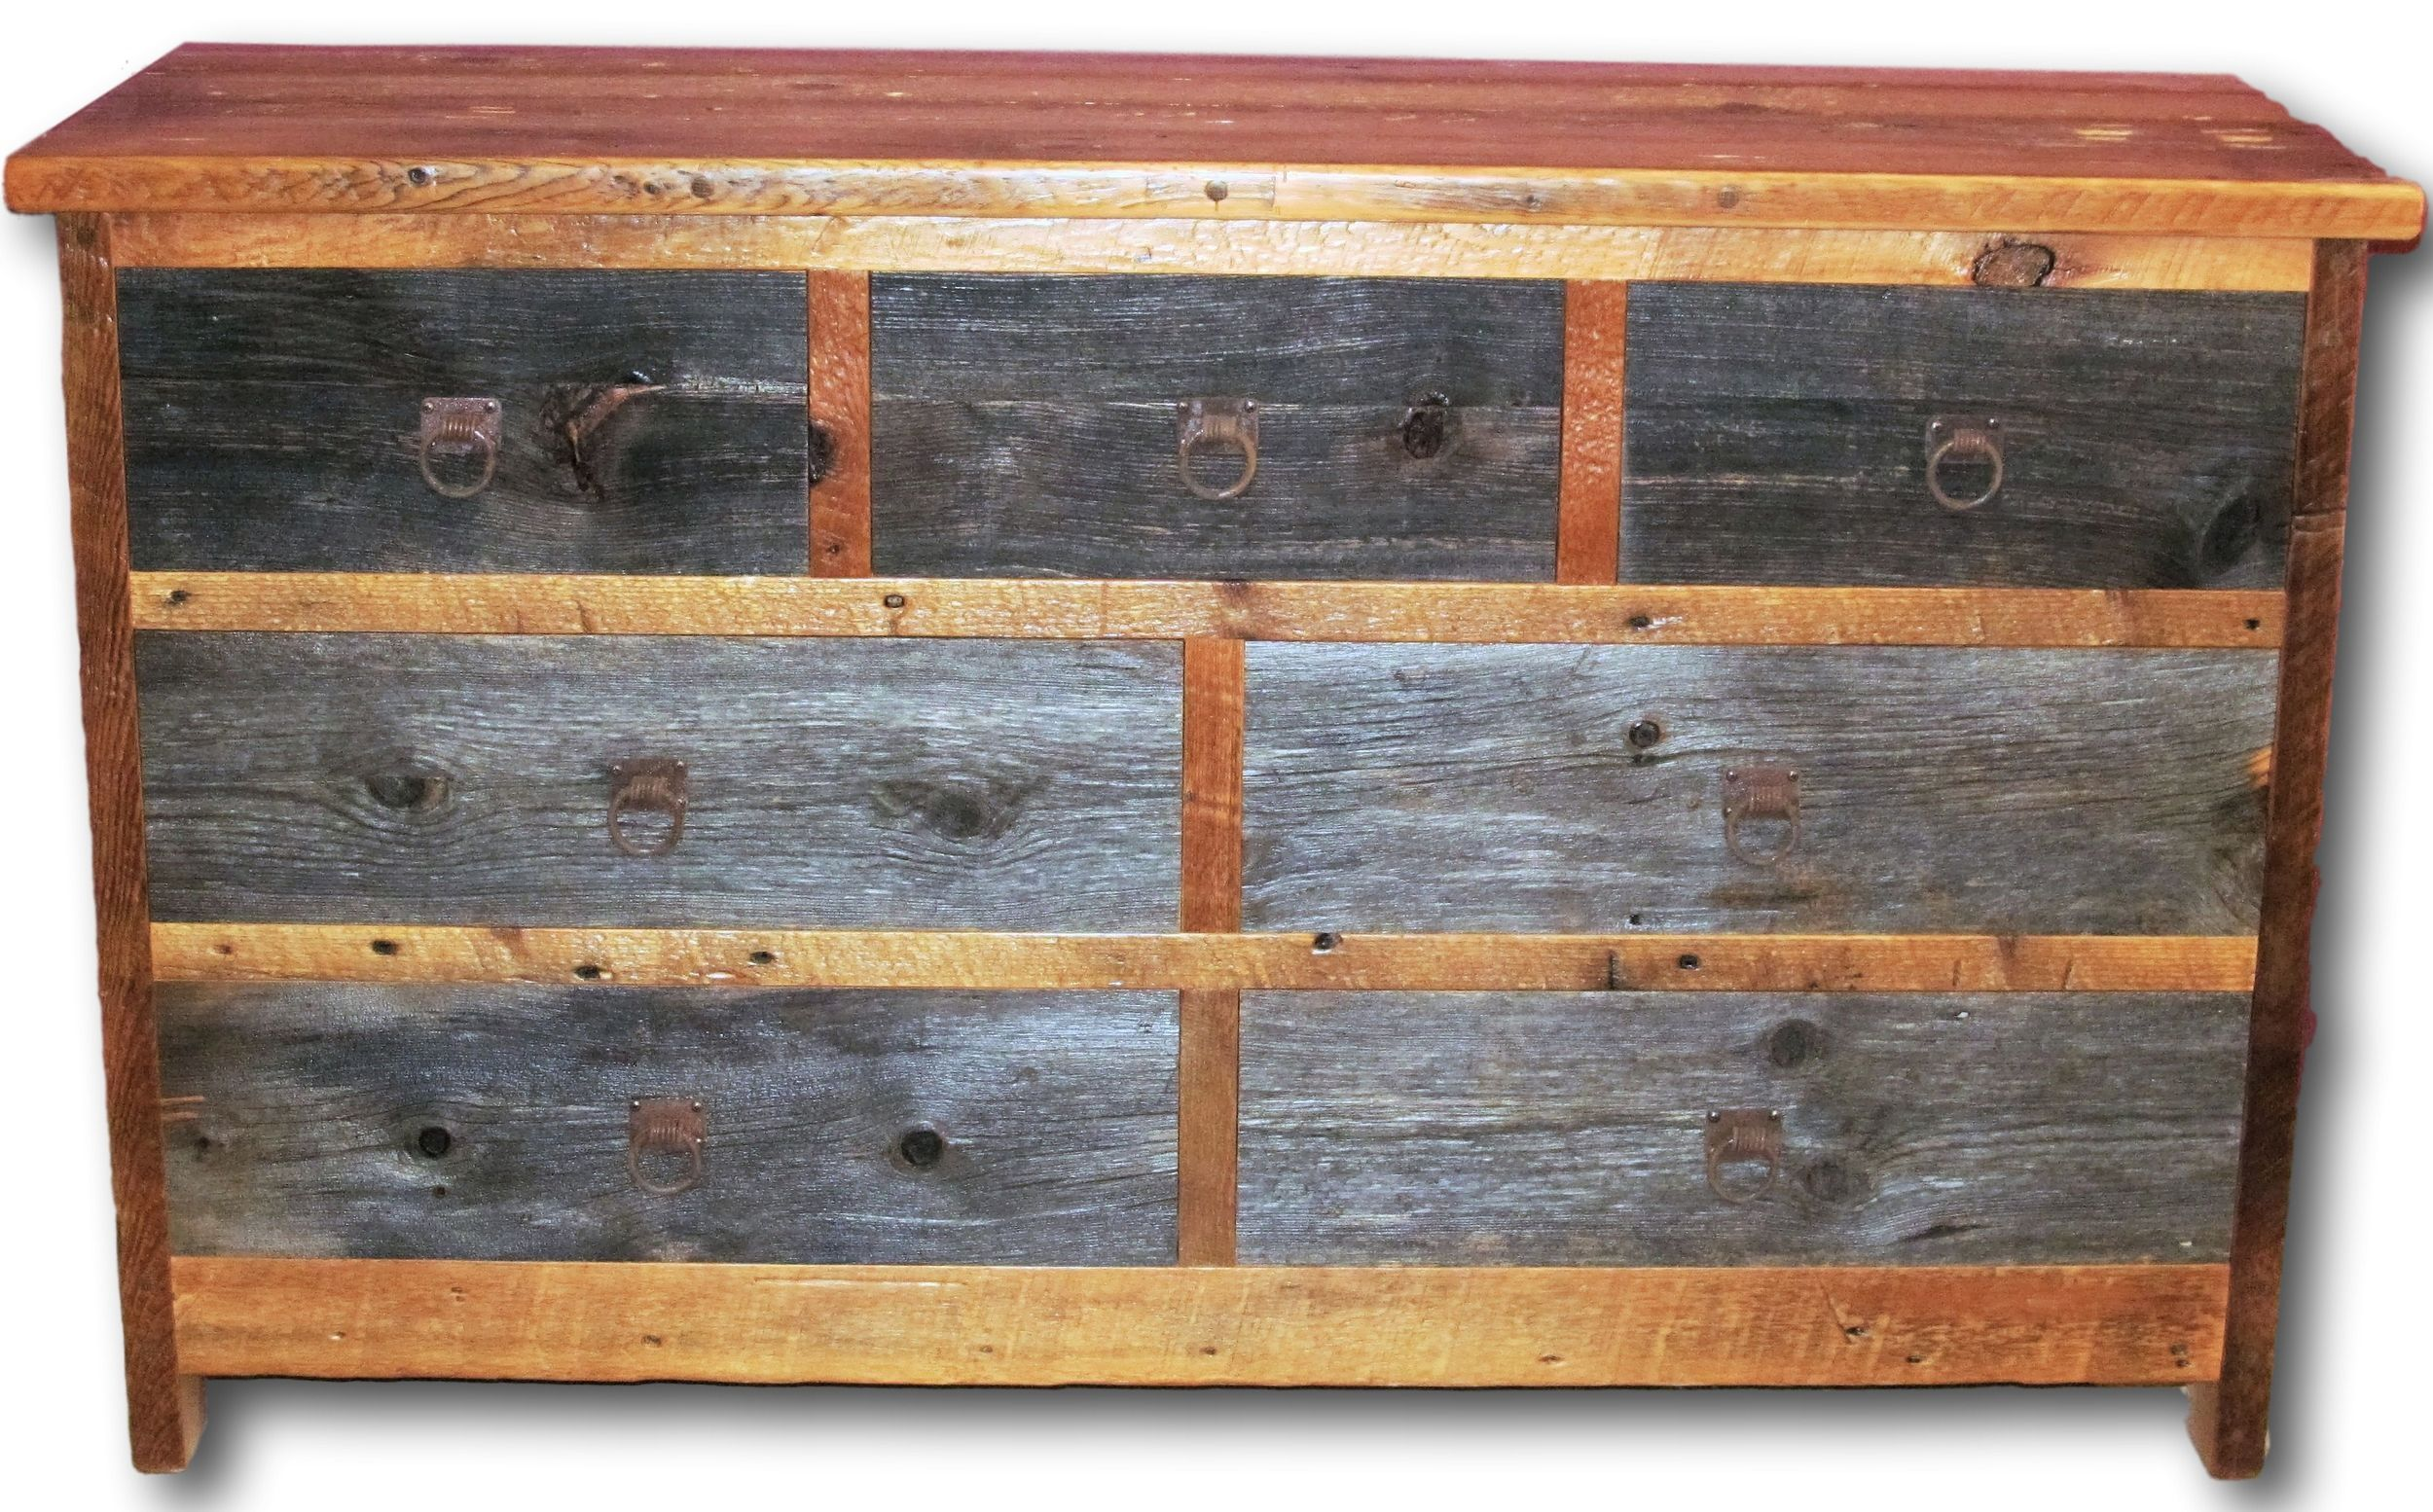 Buy a hand crafted reclaimed barn wood dresser two tone 7 for Buy reclaimed barn wood